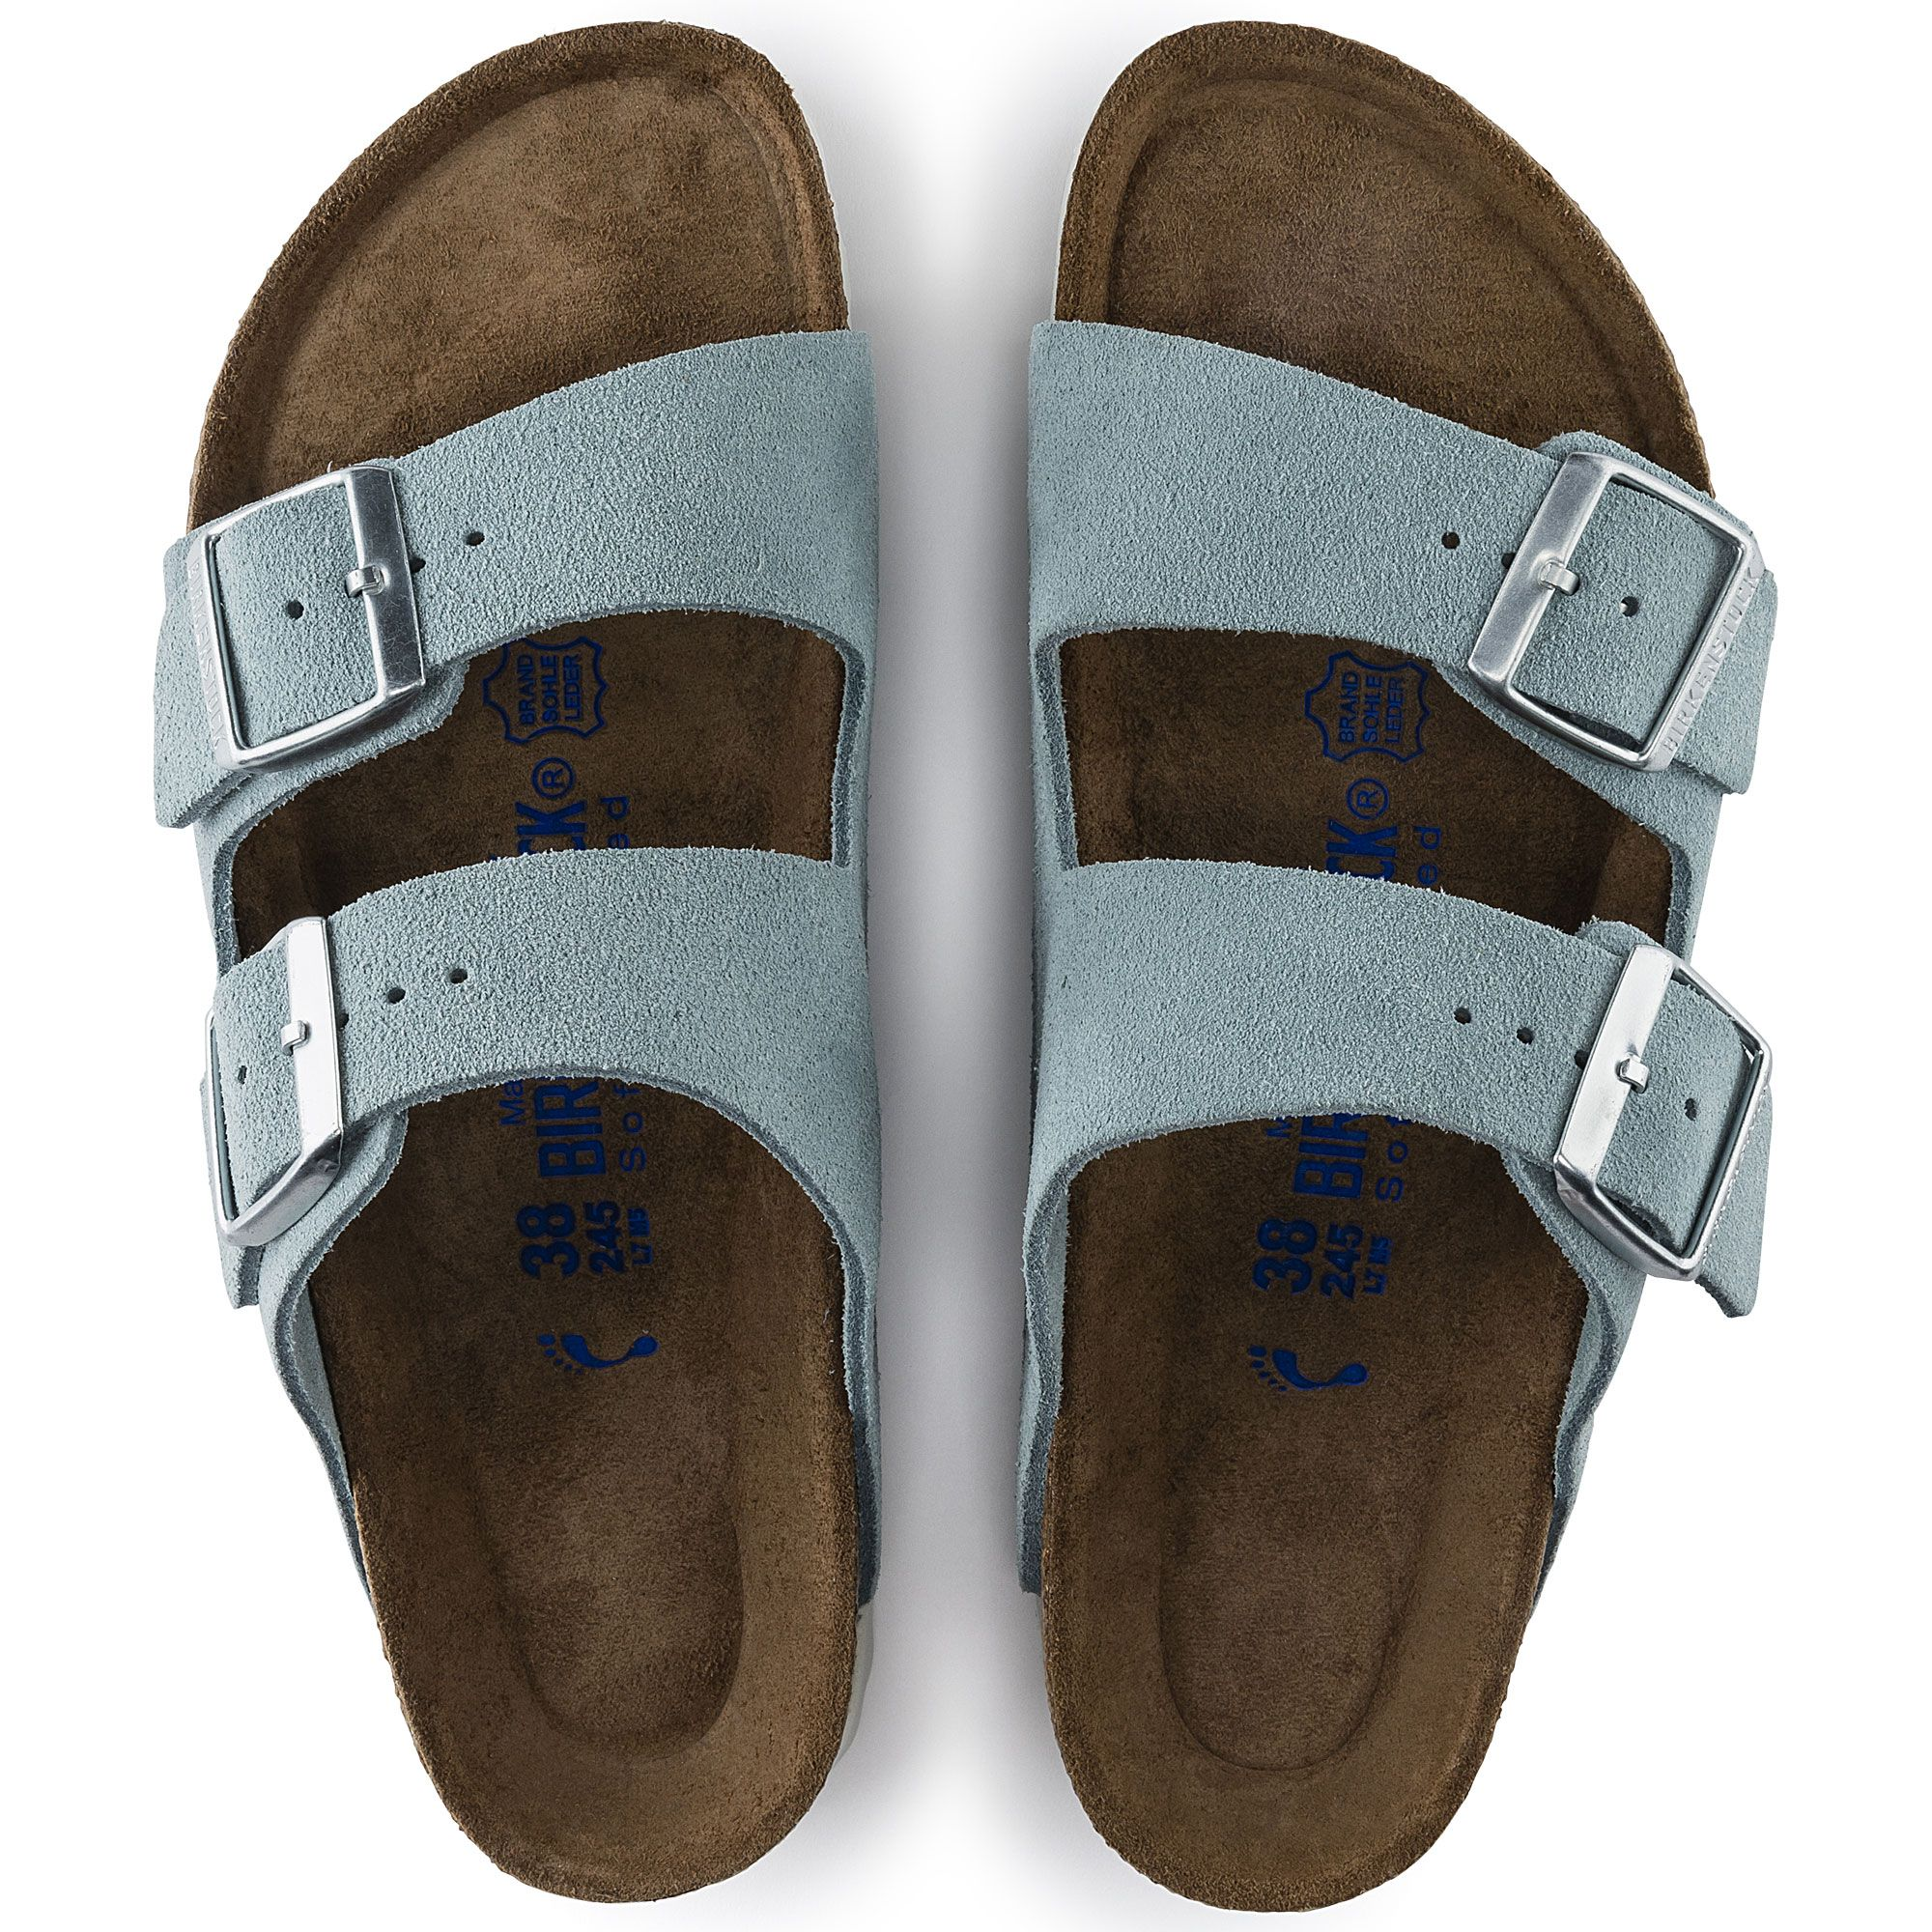 0c9e19d07793 Arizona Pelle scamosciata Soft Footbed Light Blue. Arizona Suede Leather  Soft footbed Light Blue Birkenstock ...